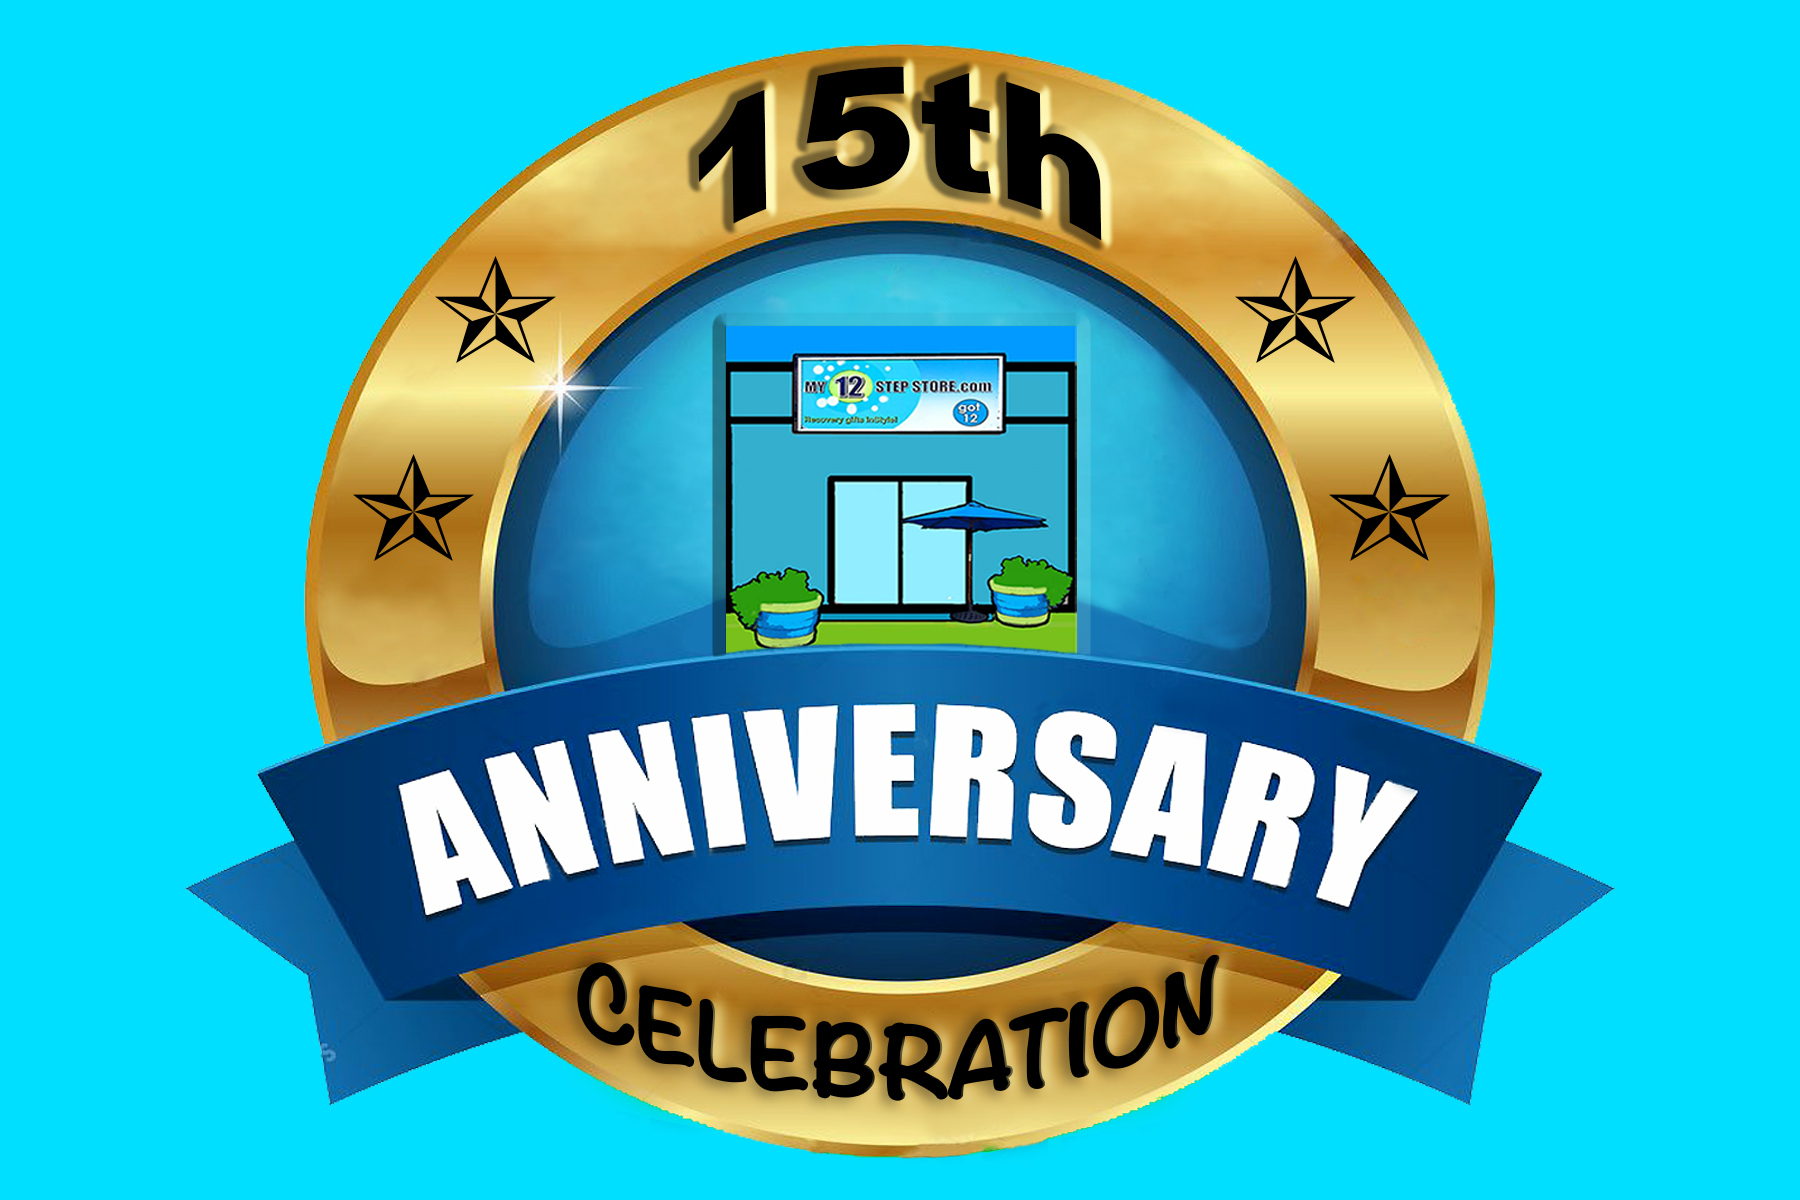 My 12 step store celebrates 15 years of serving the recovery my 12 step colourmoves